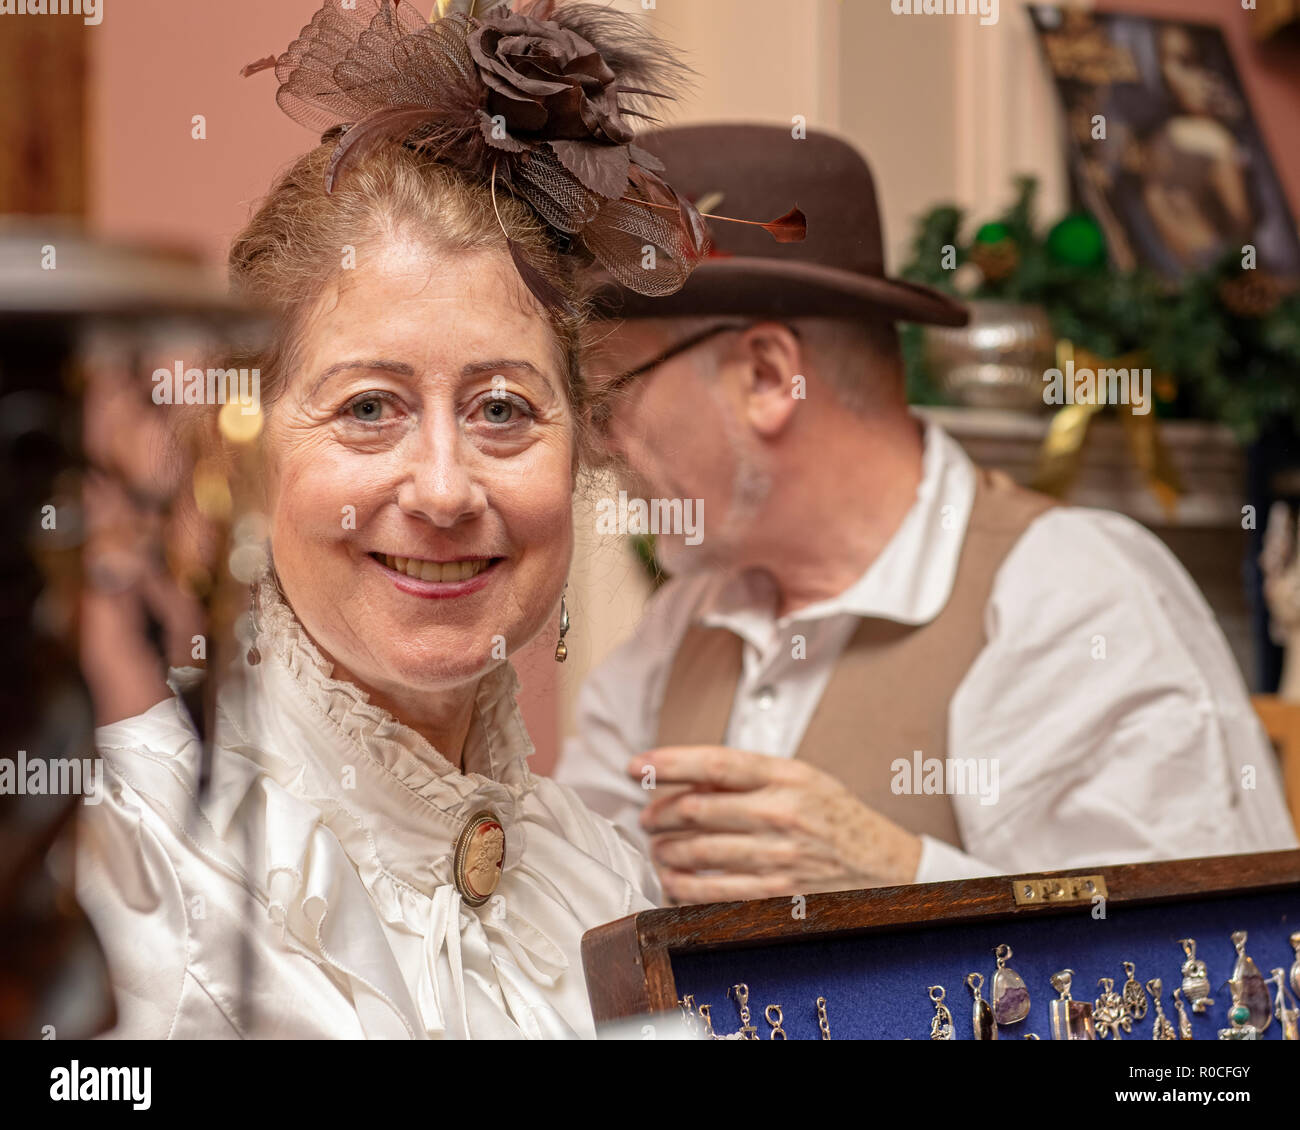 UK, Market Bosworth, Victorian Christmas Fair - December 2015: A couple of re-enactors sell jewelry at a market stall - Stock Image